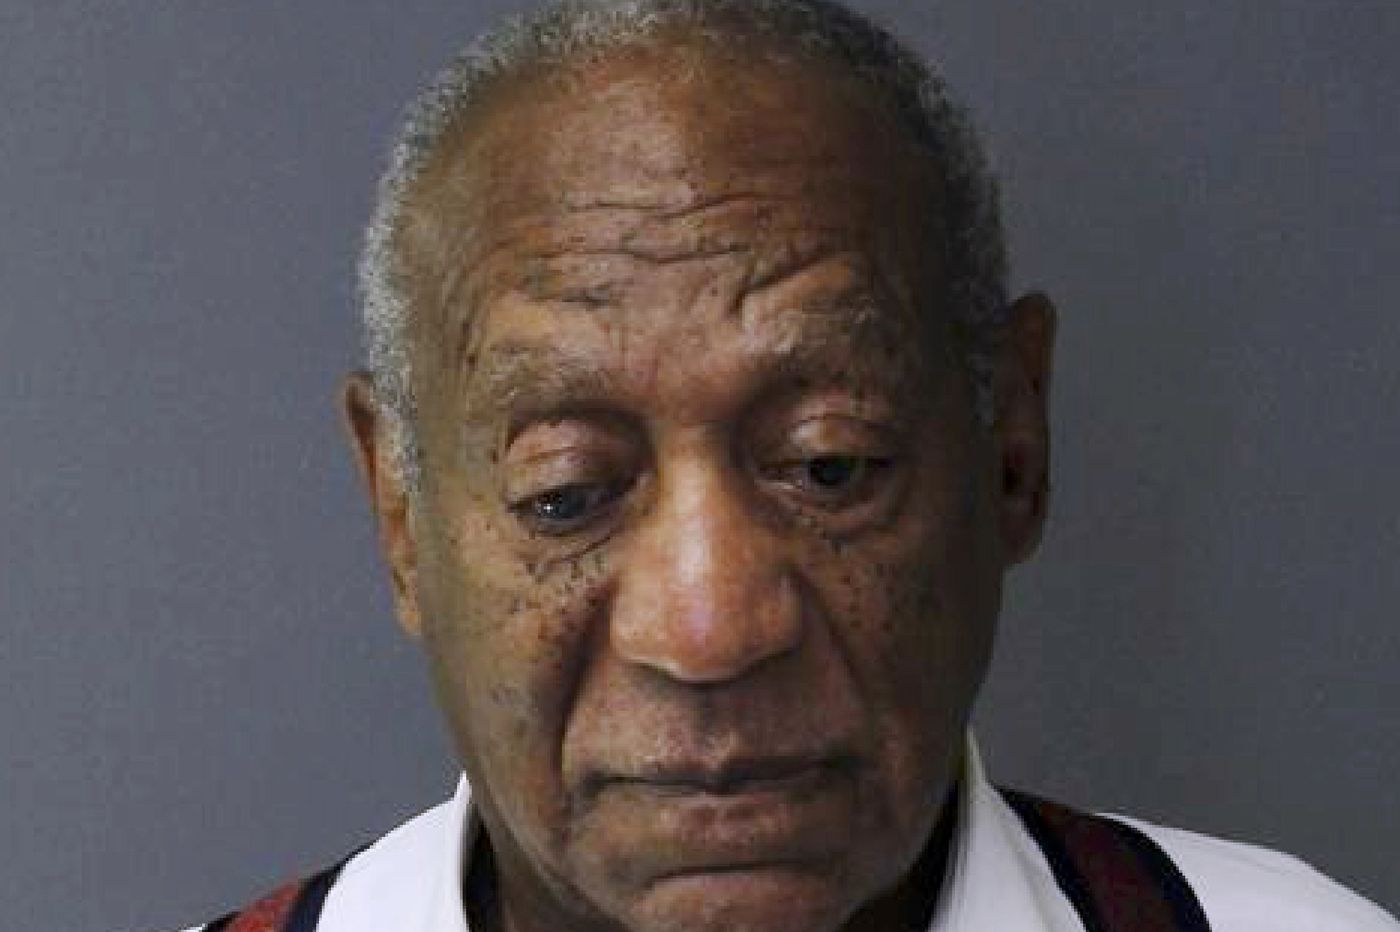 Judge: Cosby accusers' testimony points to 'signature' crime